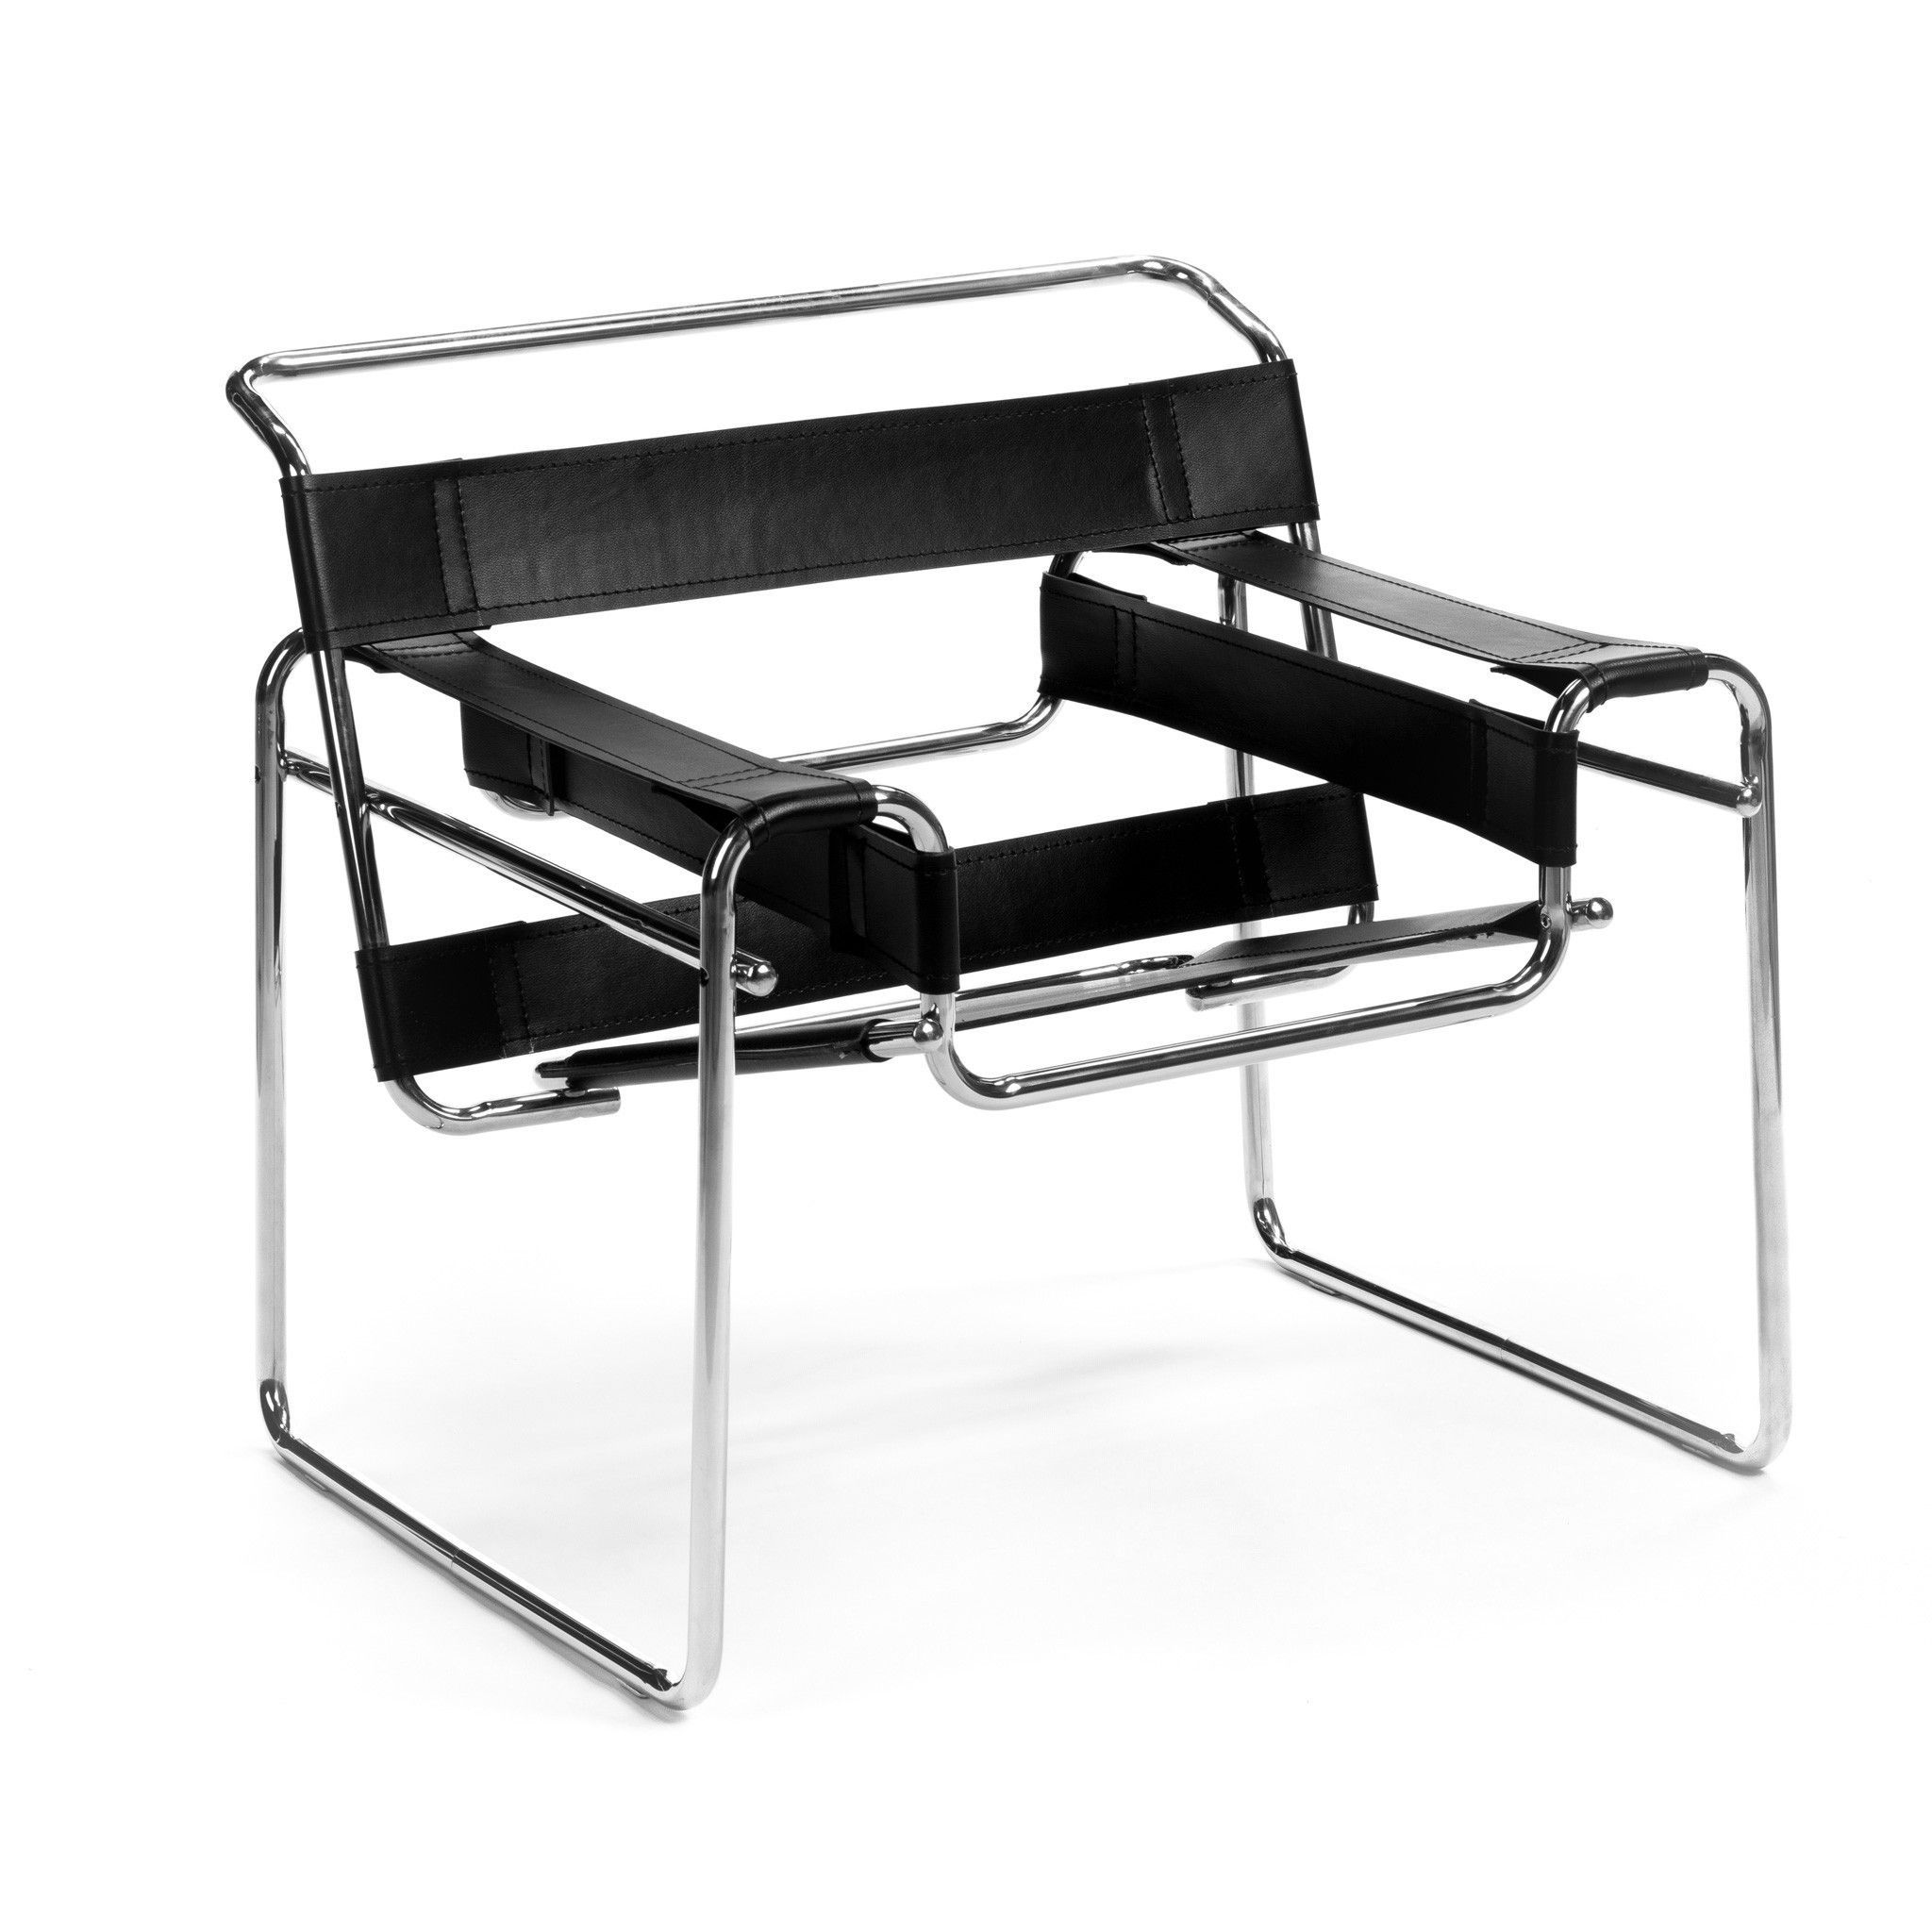 Kandinsky Chair Breuer wassily chair, Wassily chair